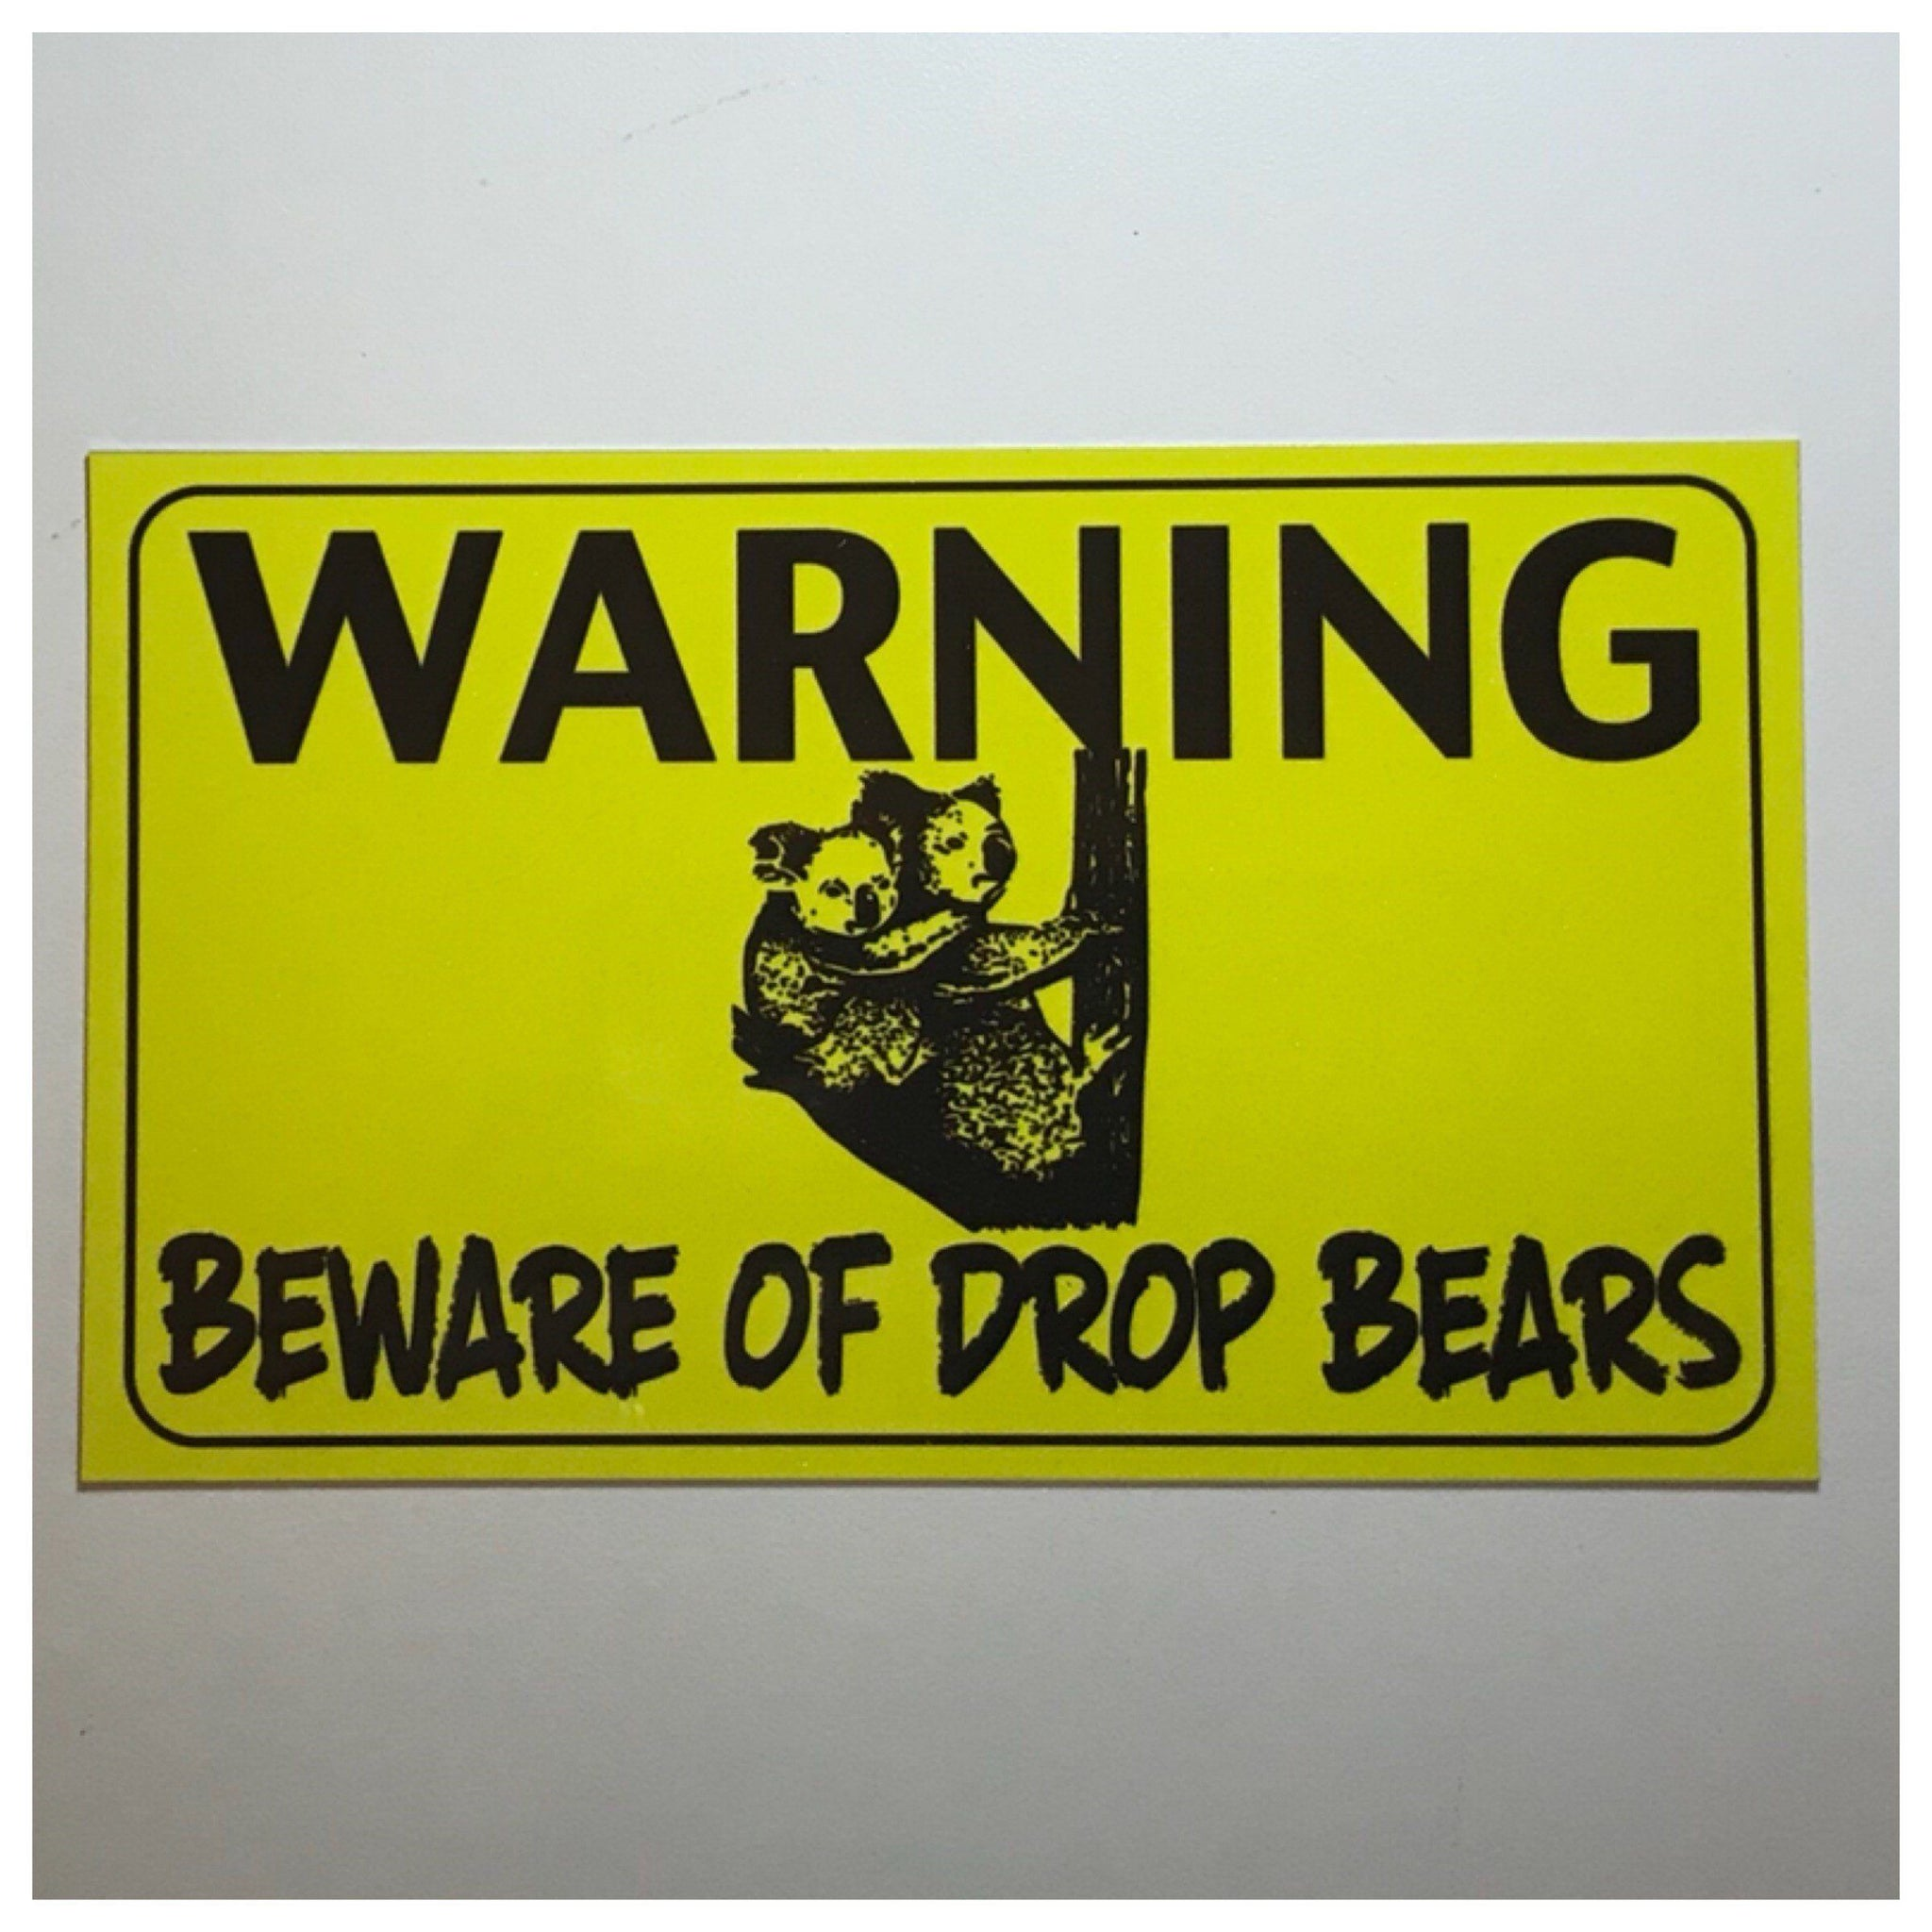 Warning Beware Of Drop Bears Koala Sign Wall Plaque or Hanging - The Renmy Store